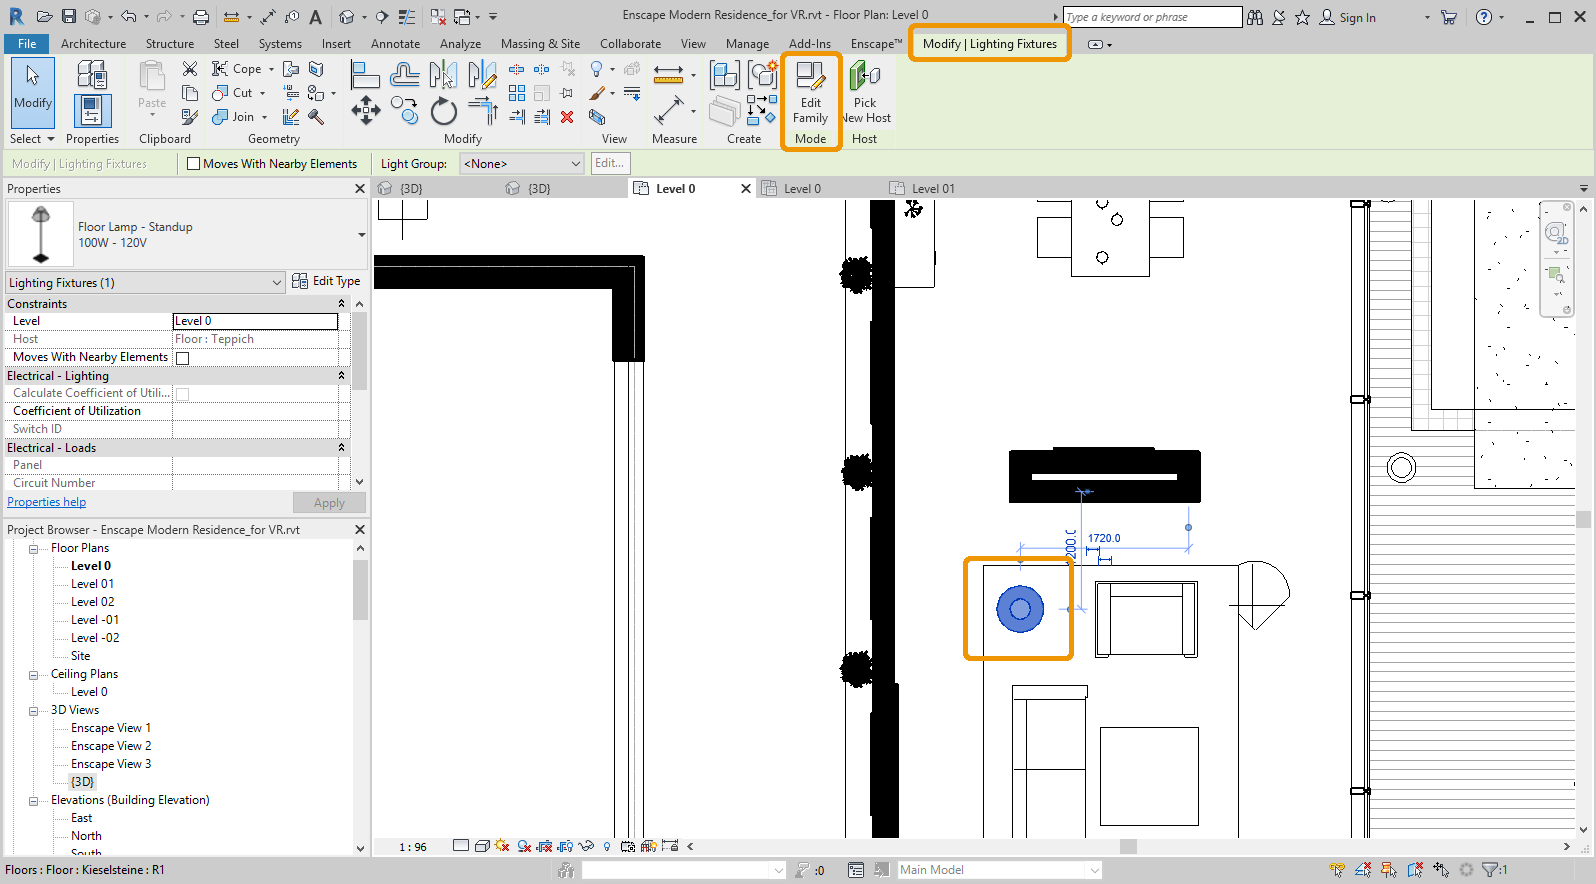 Modify | Lighting Fixtures options in Revit